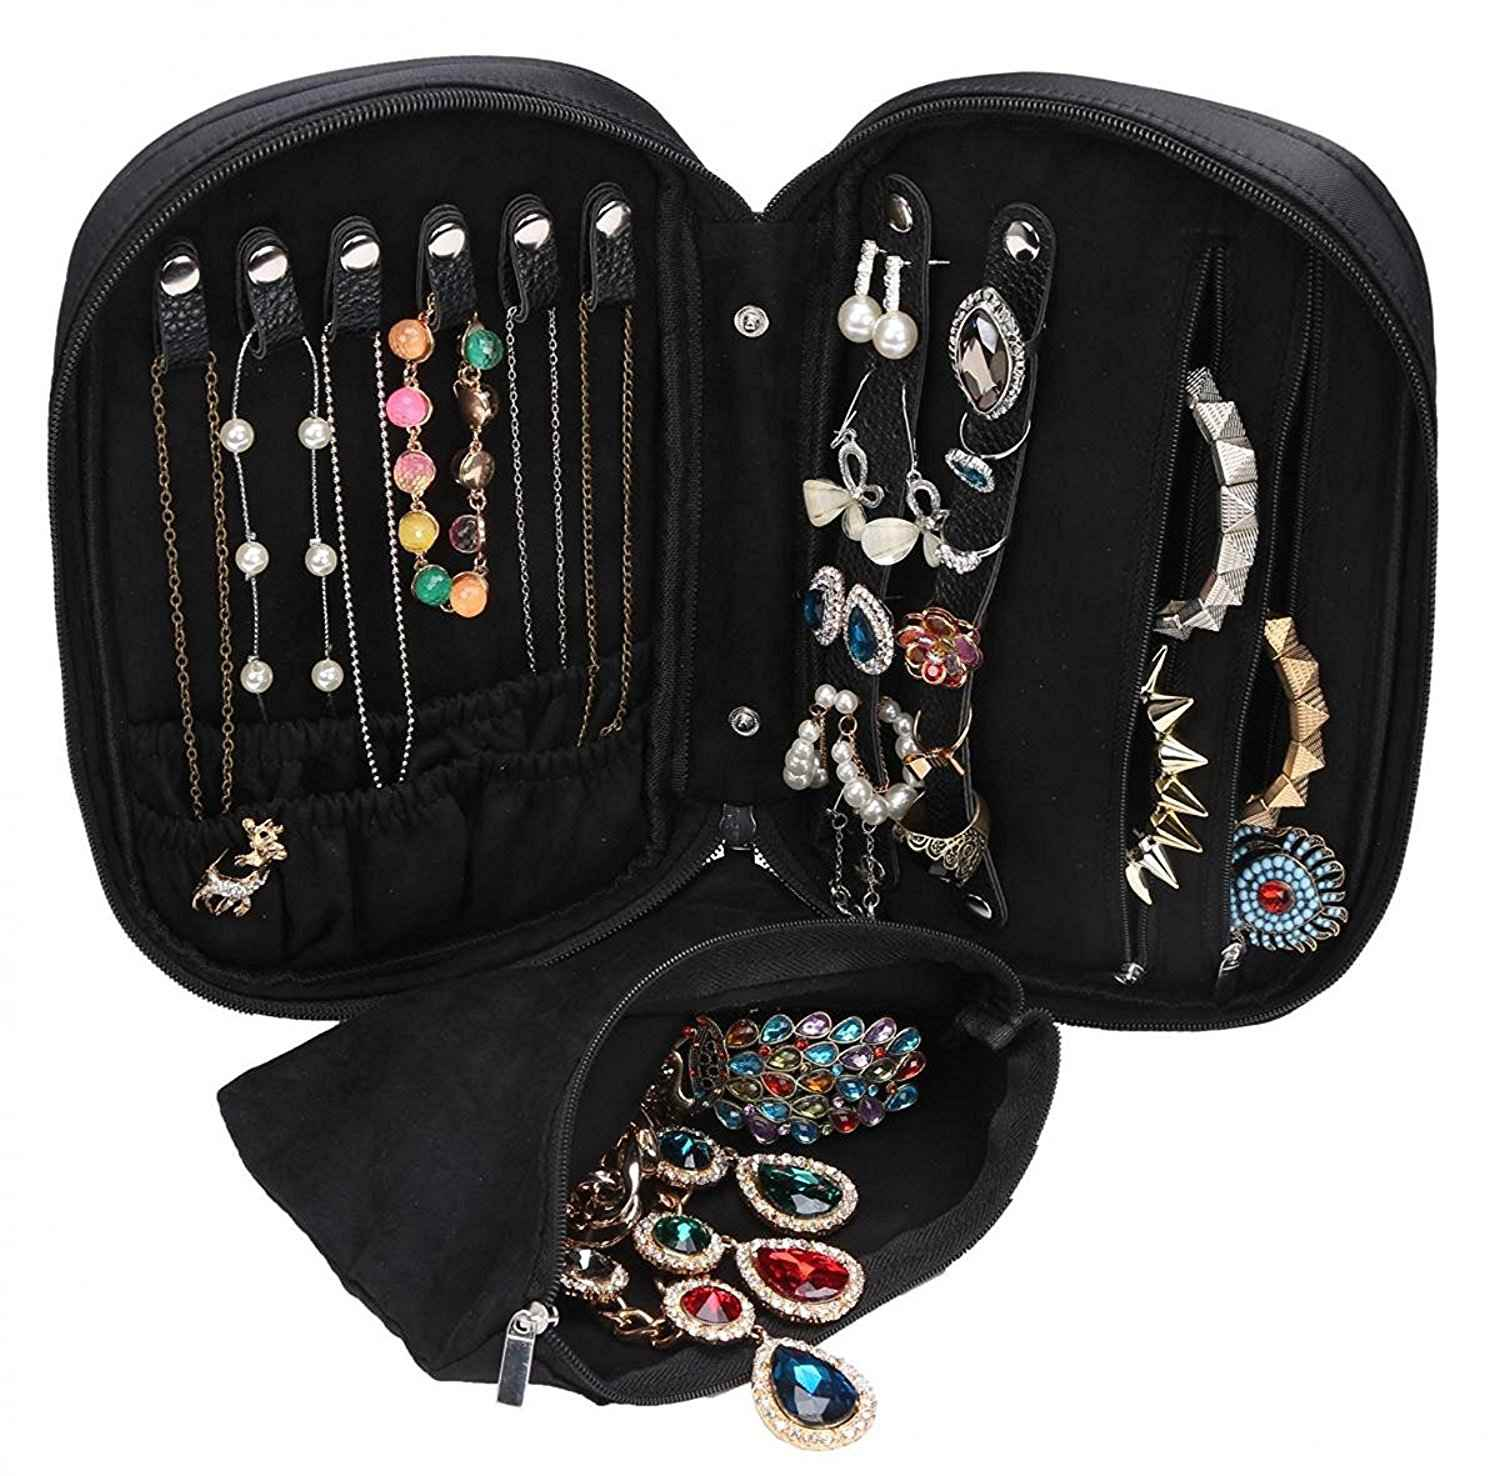 Wodison Zipper Carry On Travel Jewelry Case Organizer With Removable Pouch